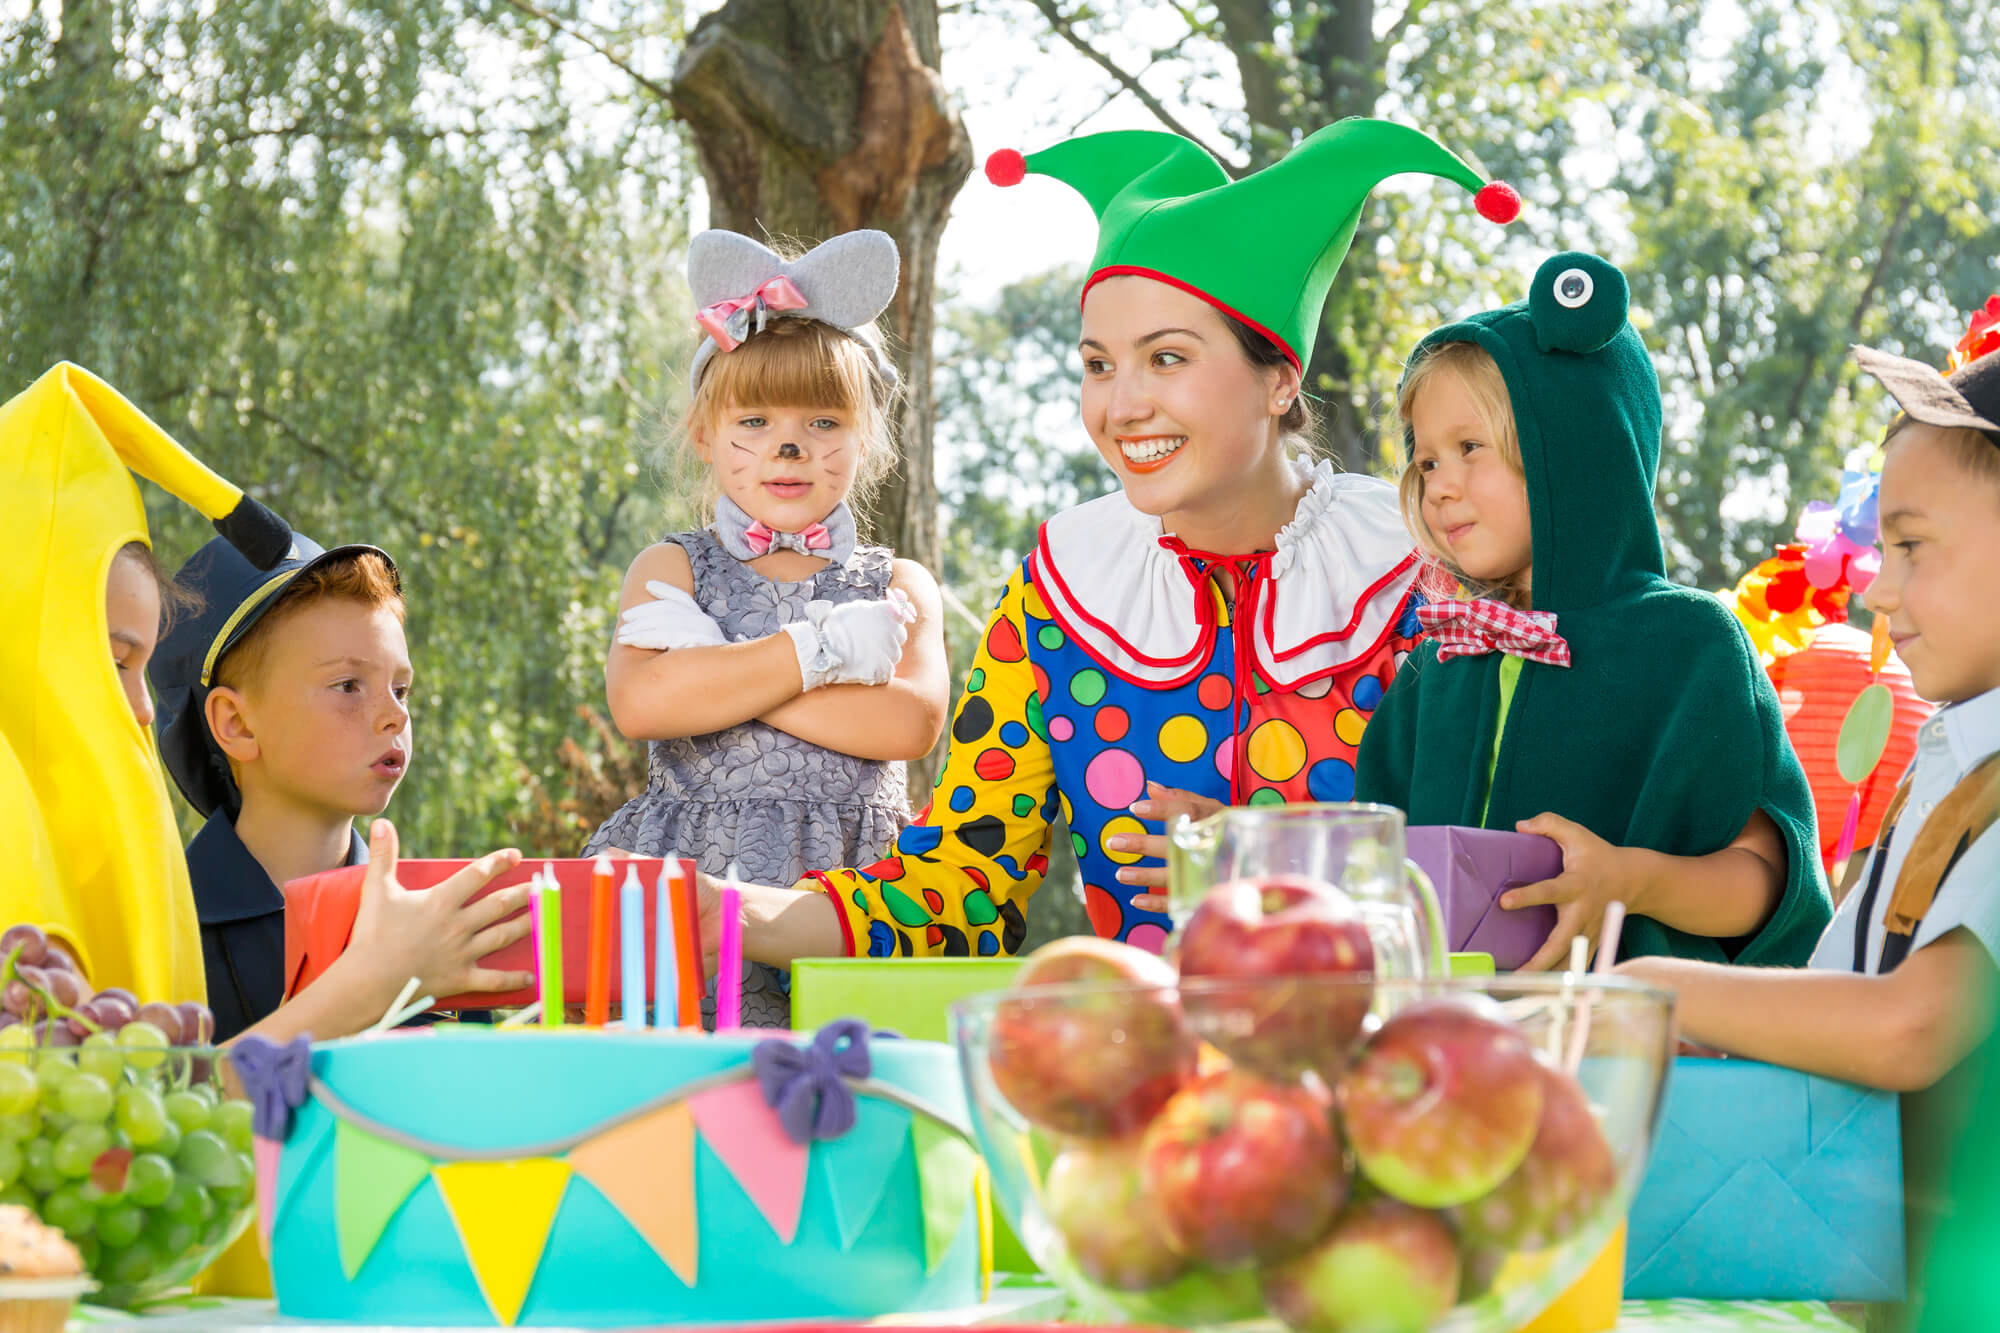 birthday party activities fall birthday party activities costumes   Step2 Blog birthday party activities